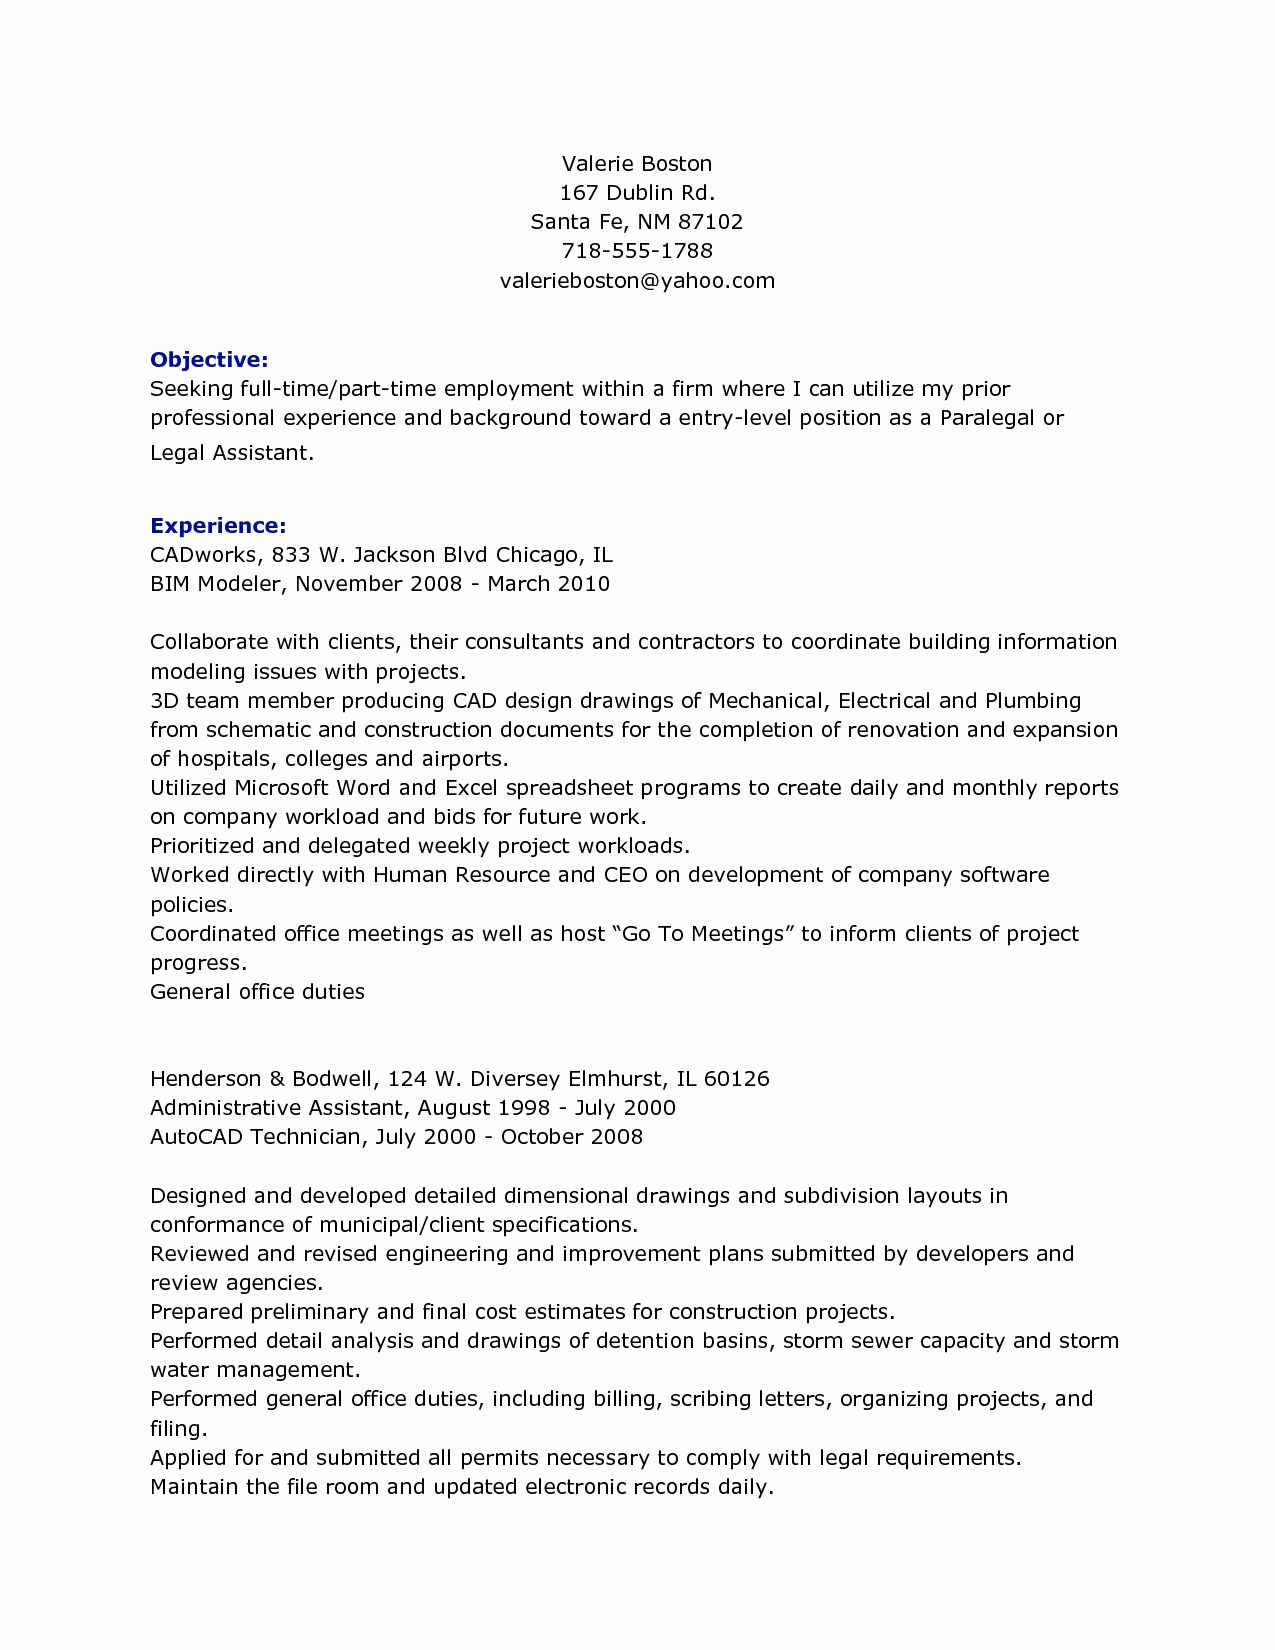 Legal assistant Resume Examples Luxury Personal Injury